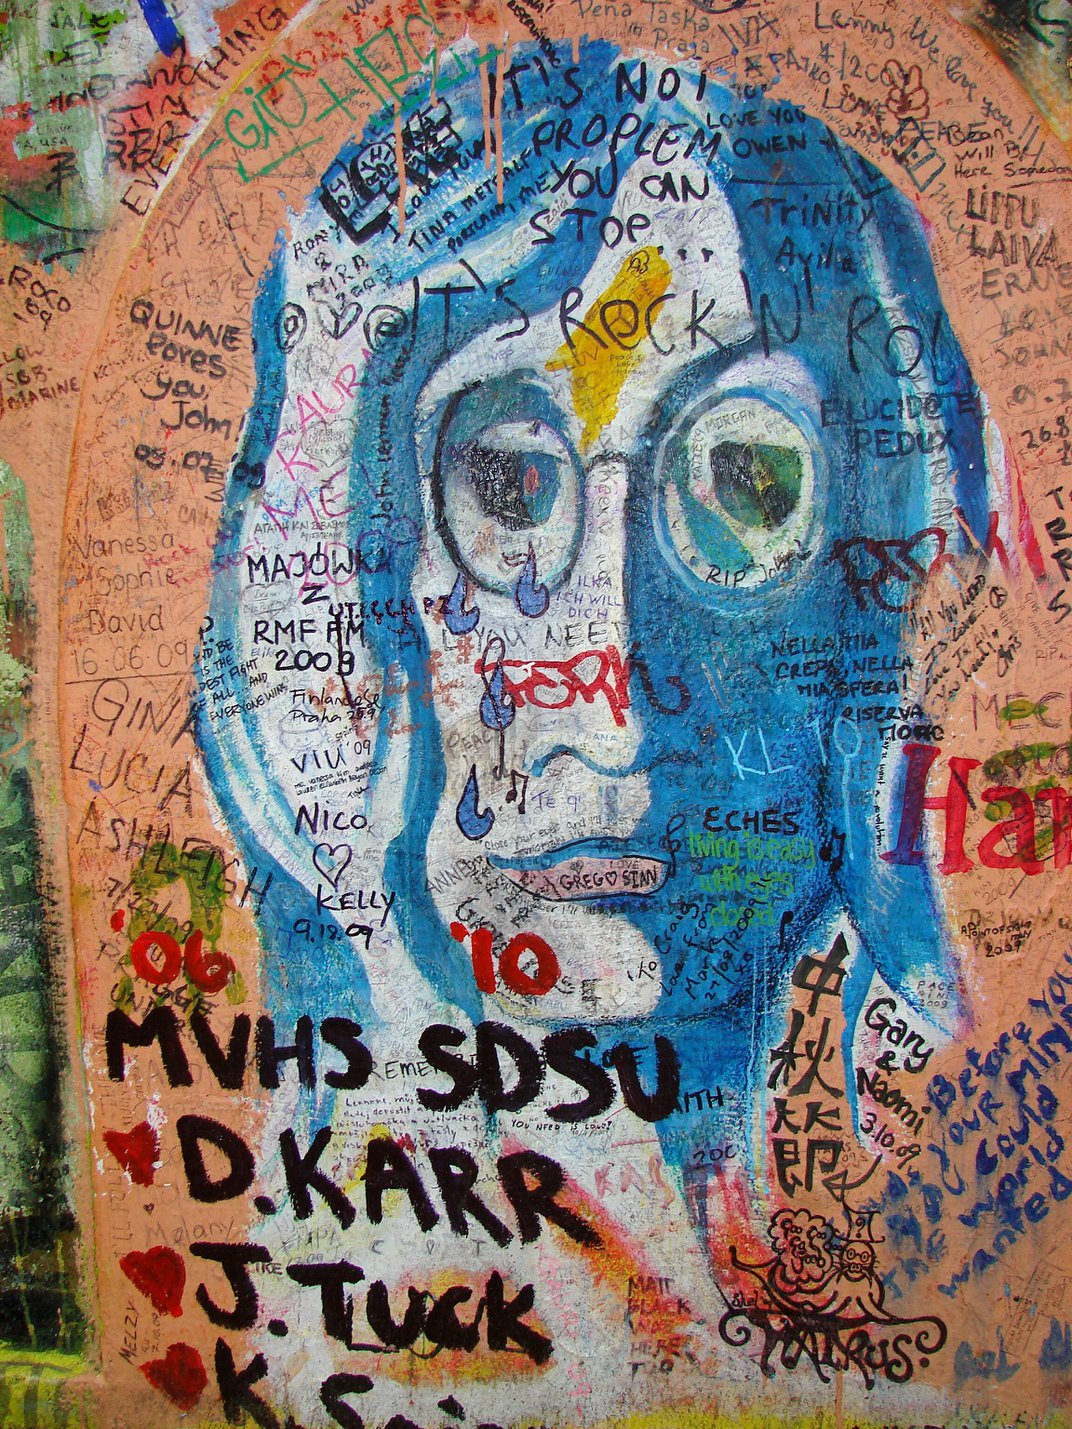 Future Graffiti Additions to Prague's John Lennon Wall Will Be Strictly Regulated